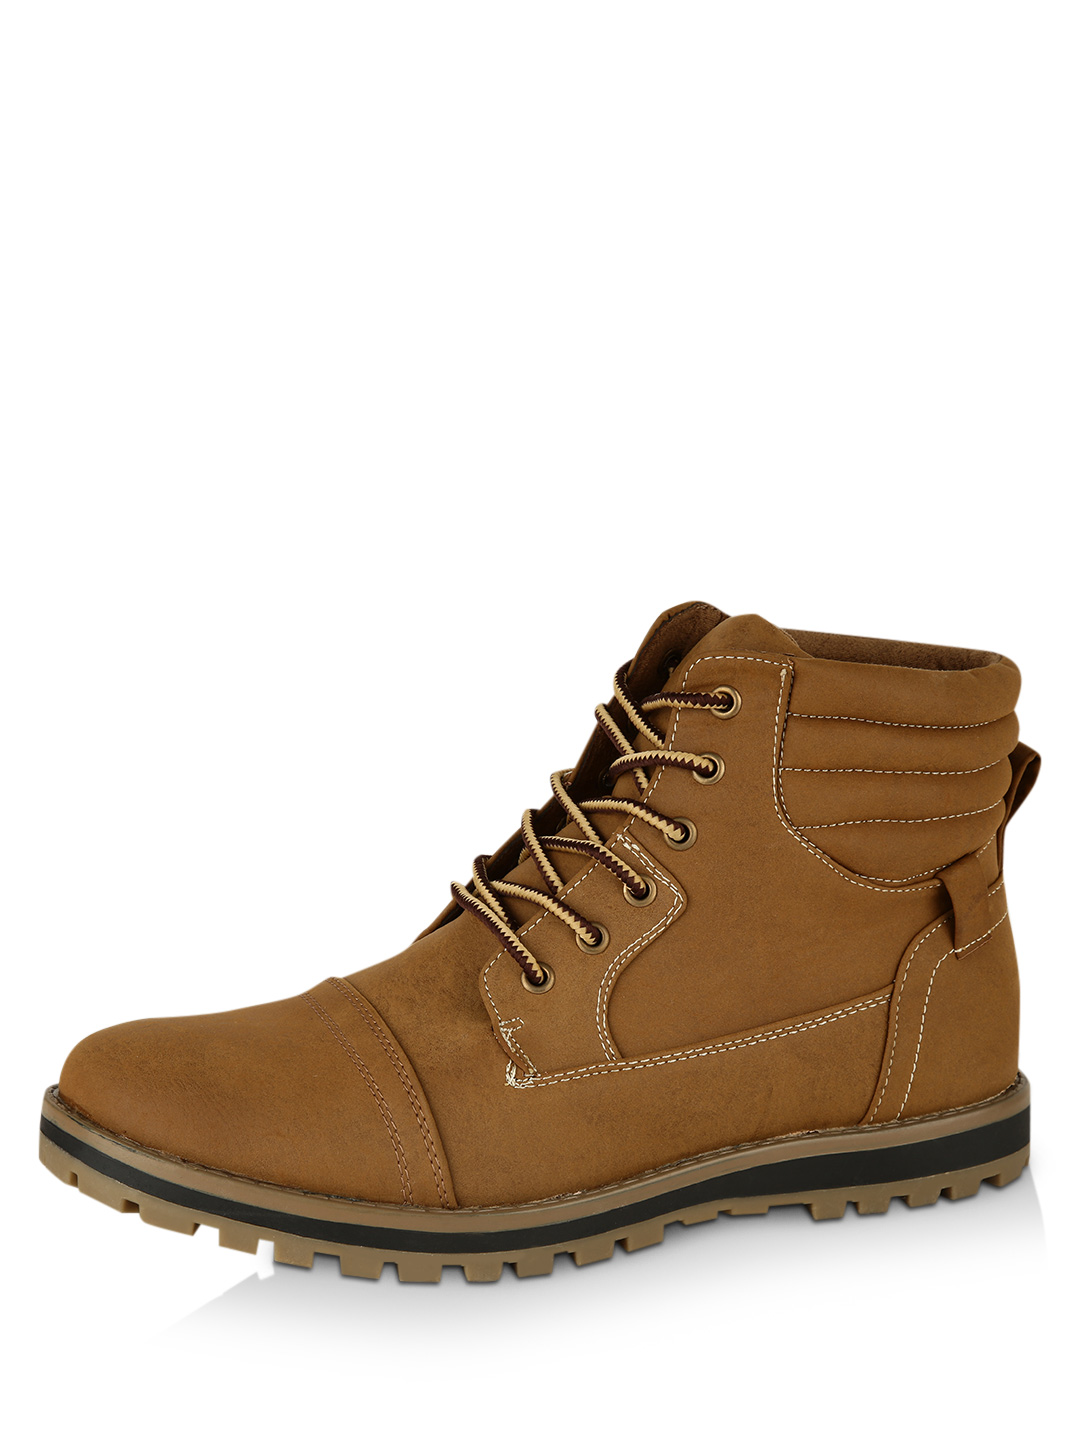 New Look Casual Worker Boots...